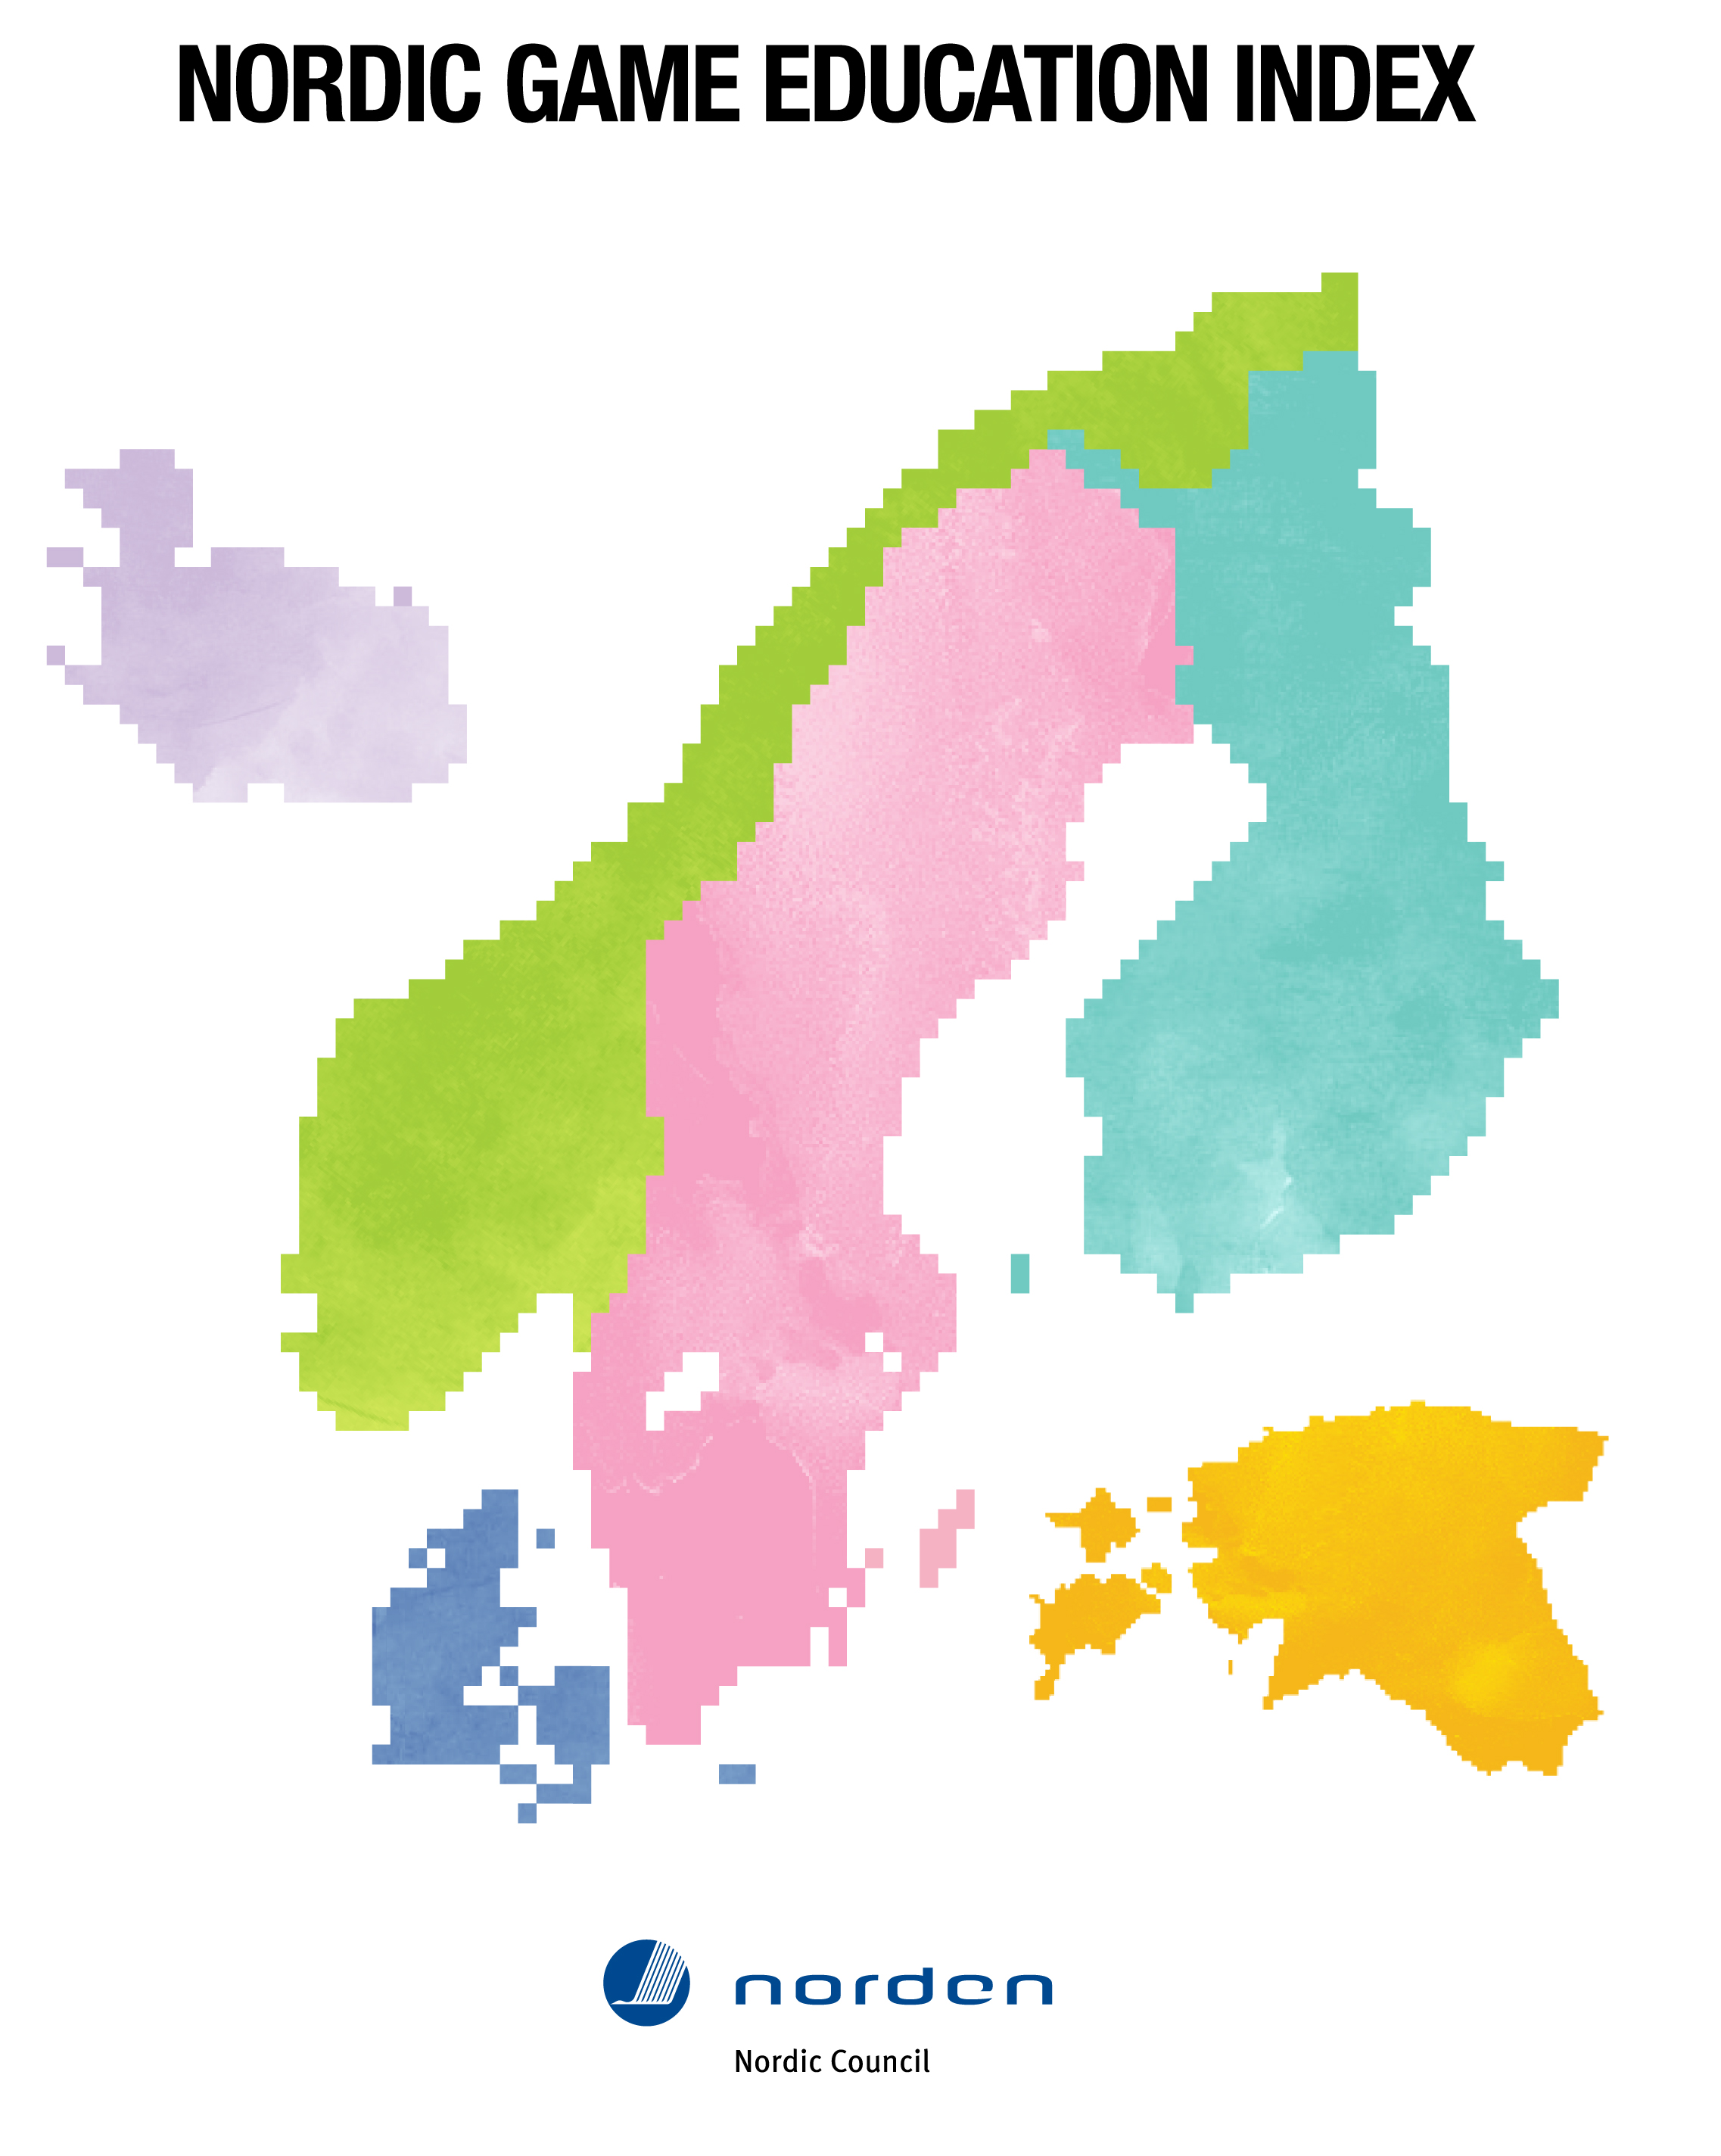 Nordic Countries: Nordic Game Education Index